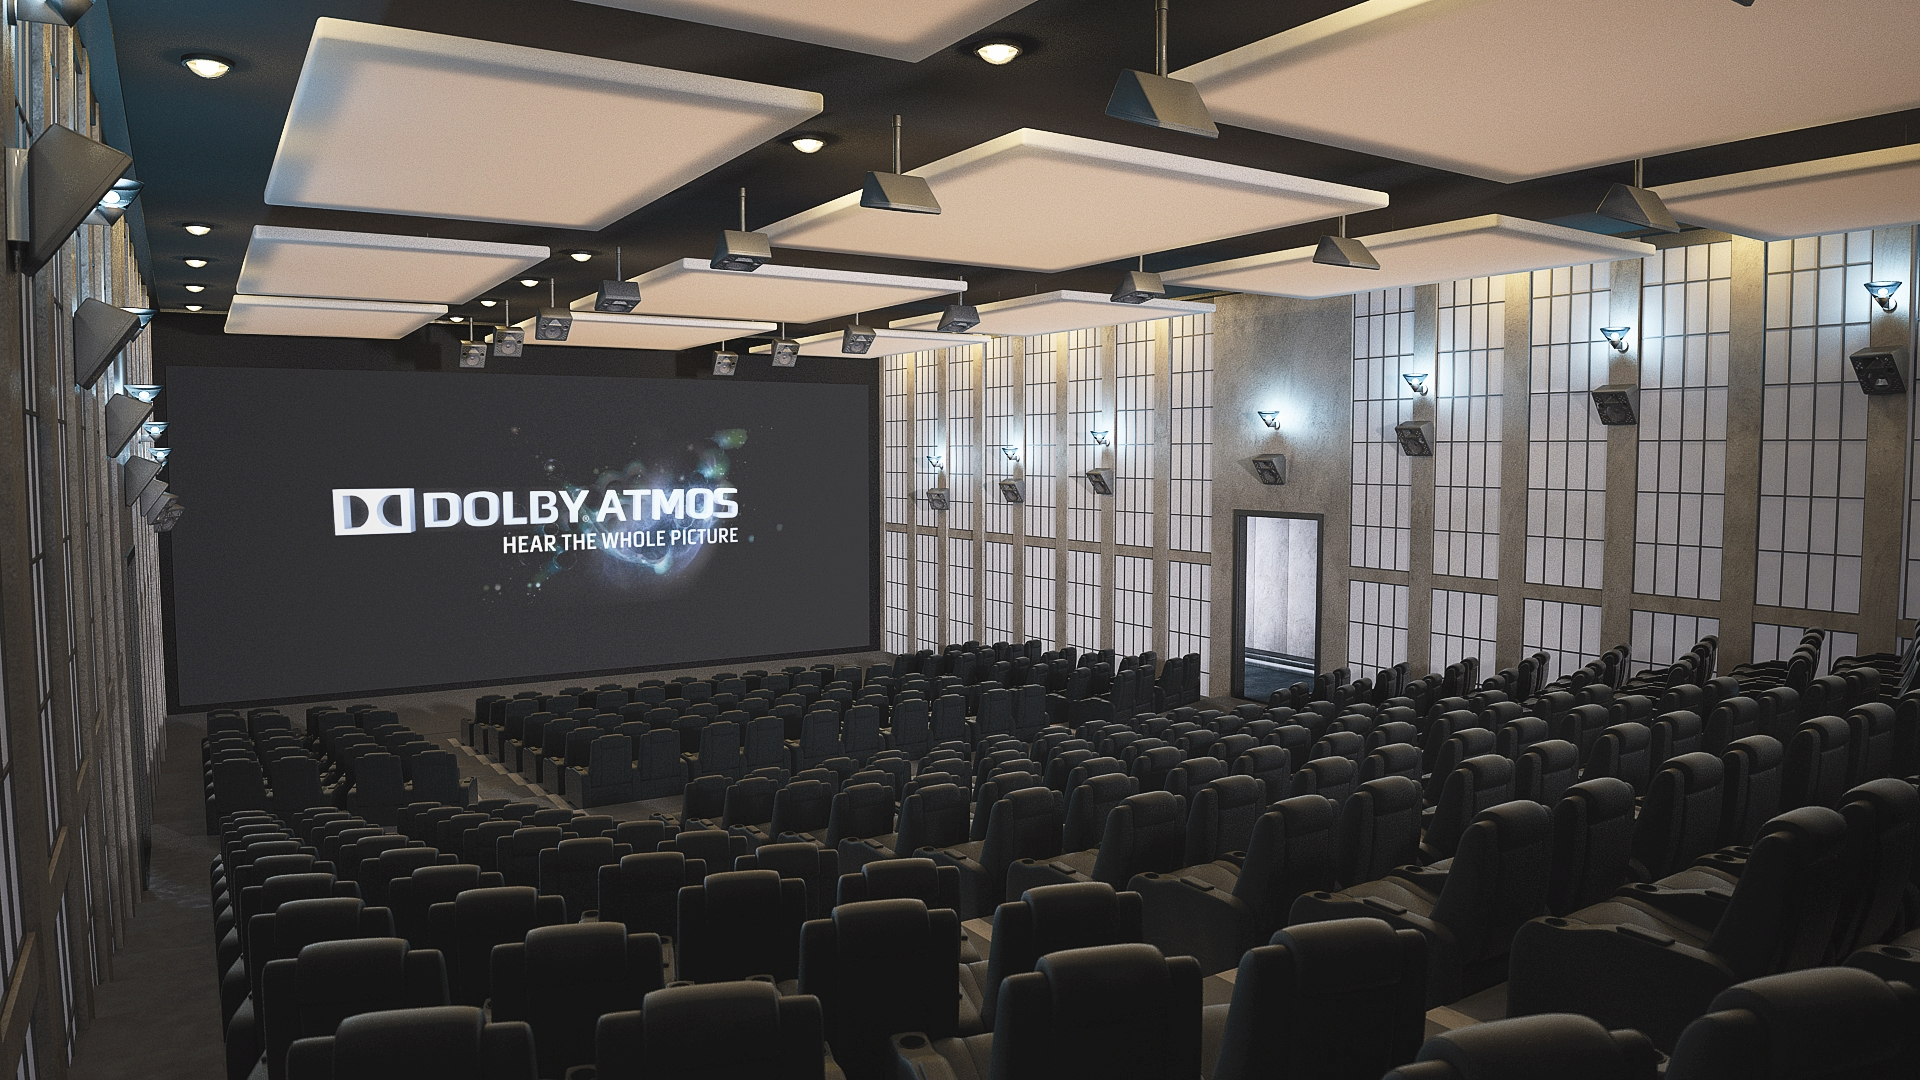 Living with Pioneer Elite 5 1 4 Dolby Atmos | david susilo UNCENSORED